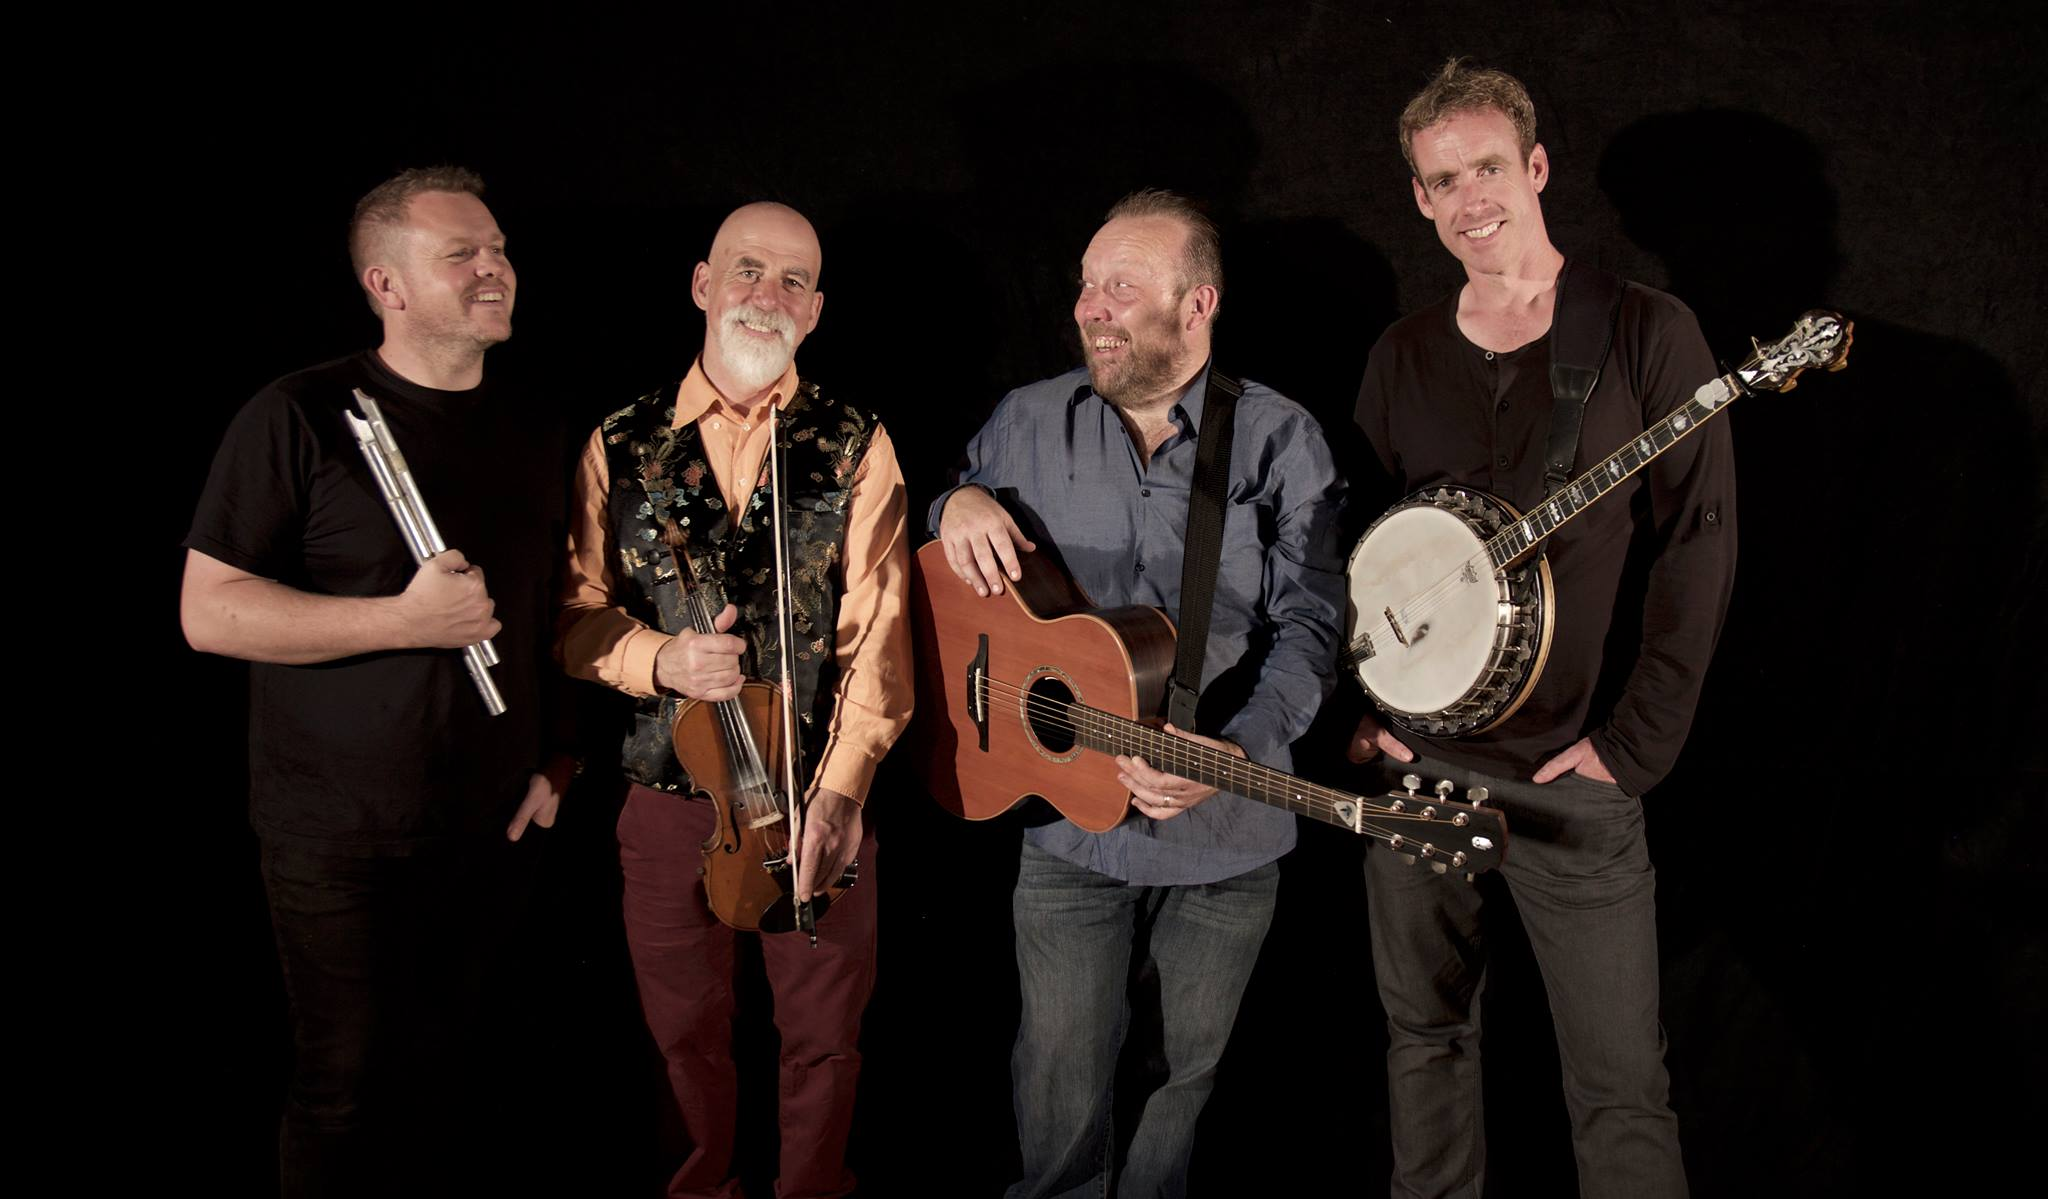 CELTIC ACTS & TRADITIONAL IRISH BANDS